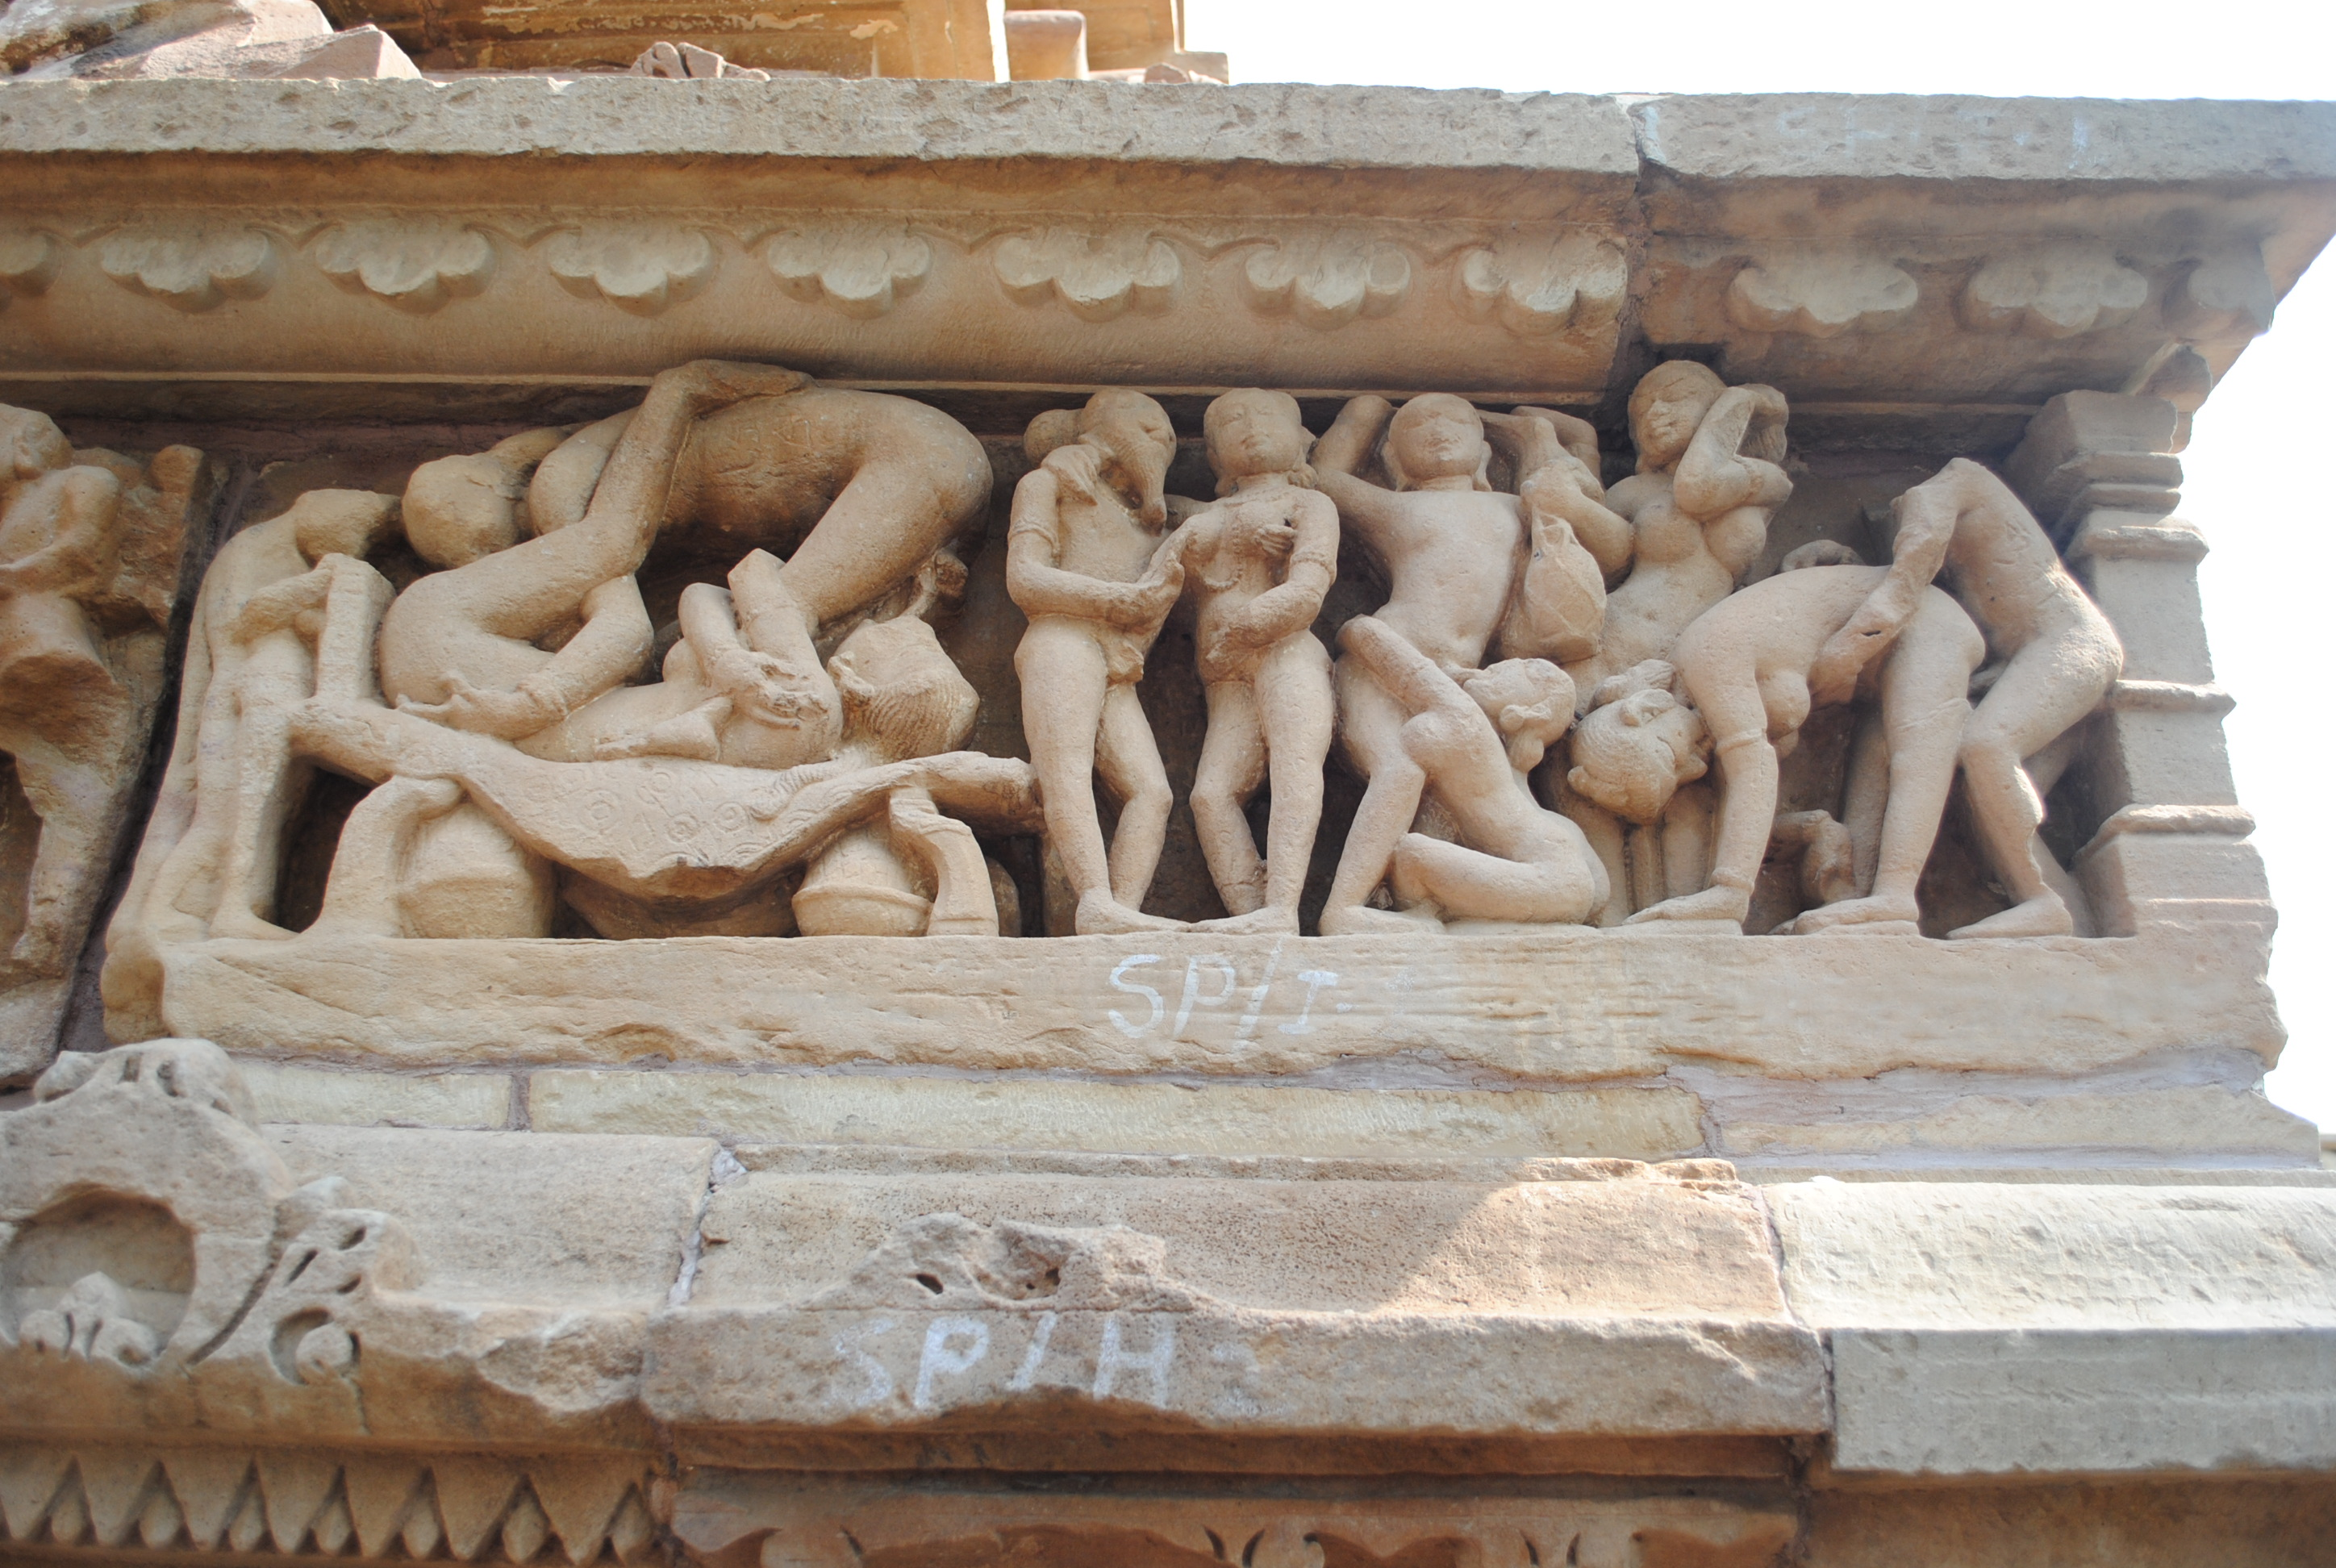 Erotic scene frieze, Lakshmana Temple, Khajuraho. Image: Kkavita CC BY-SA 4.0 Wikipedia Commons